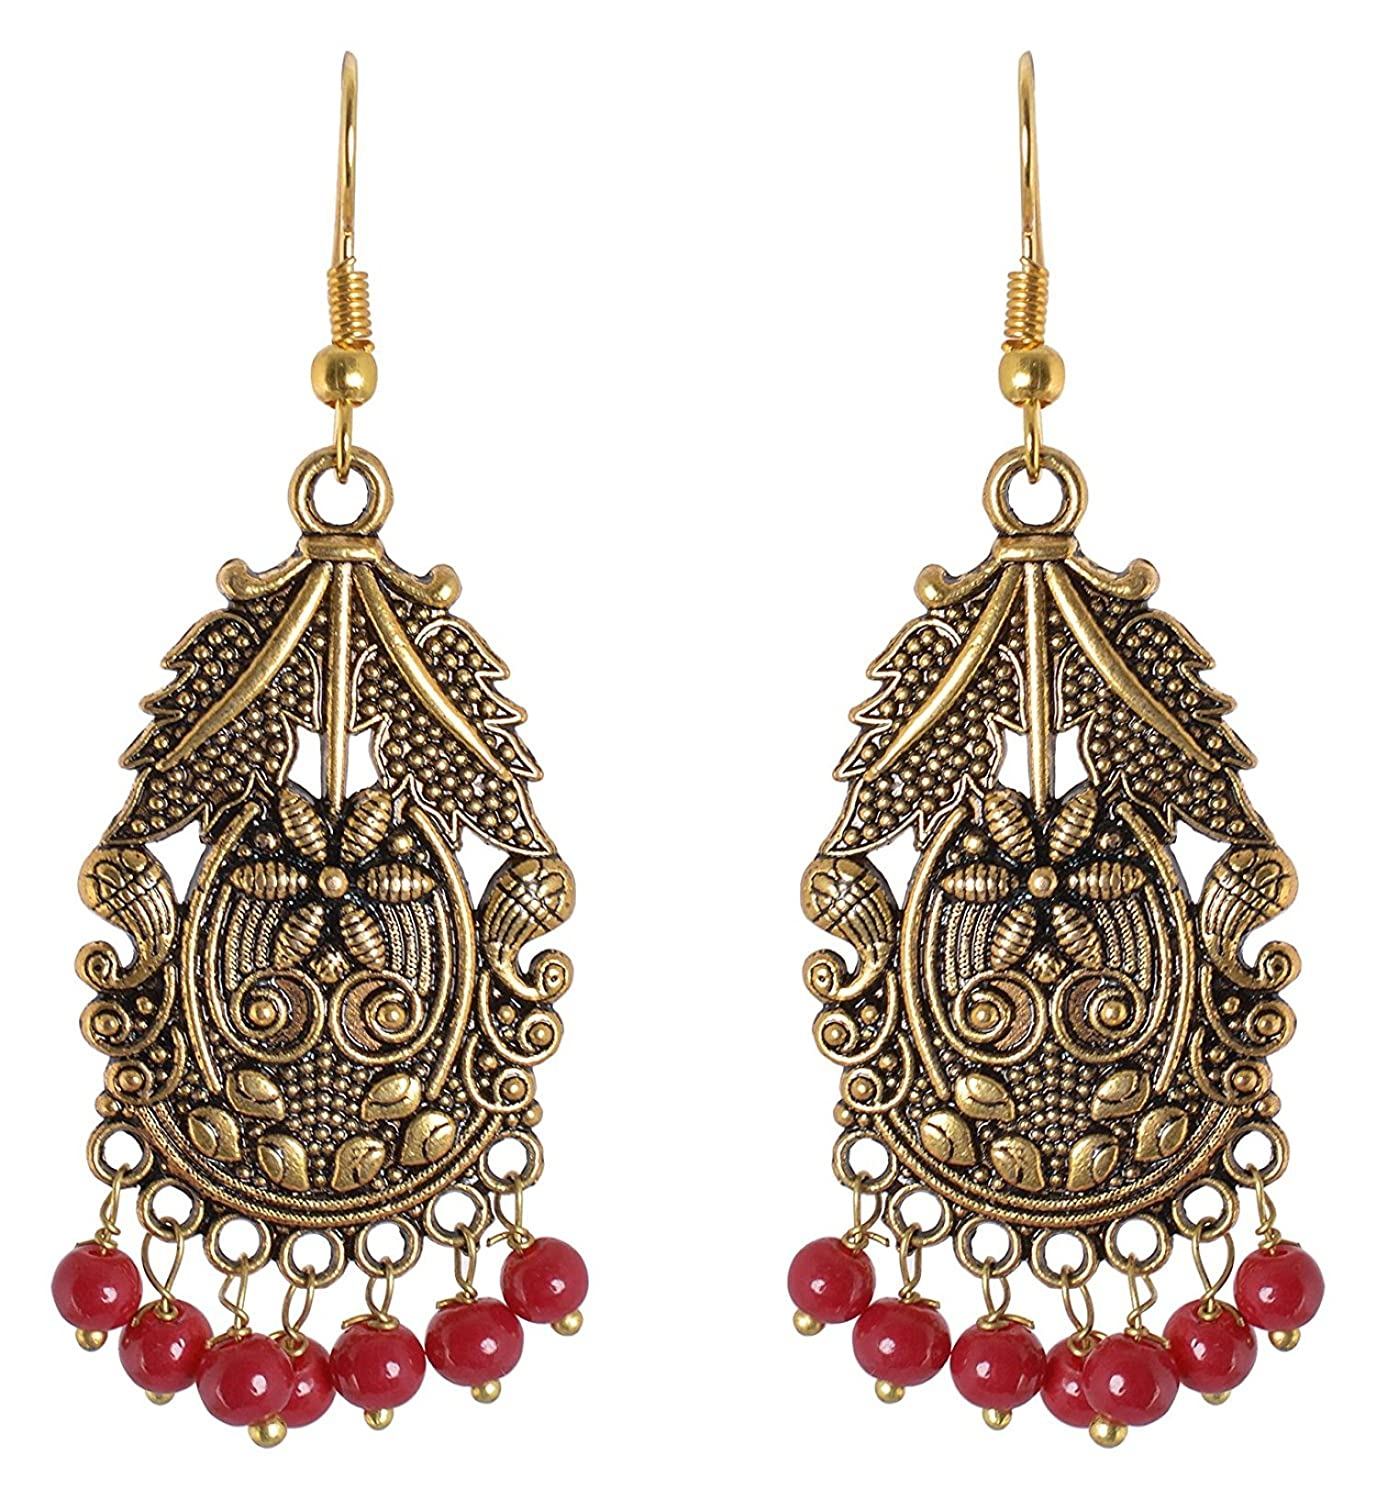 Subharpit Red Pearl Non Precious Metal Golden Indian Traditonal Dangle Earrings for Women and Girls